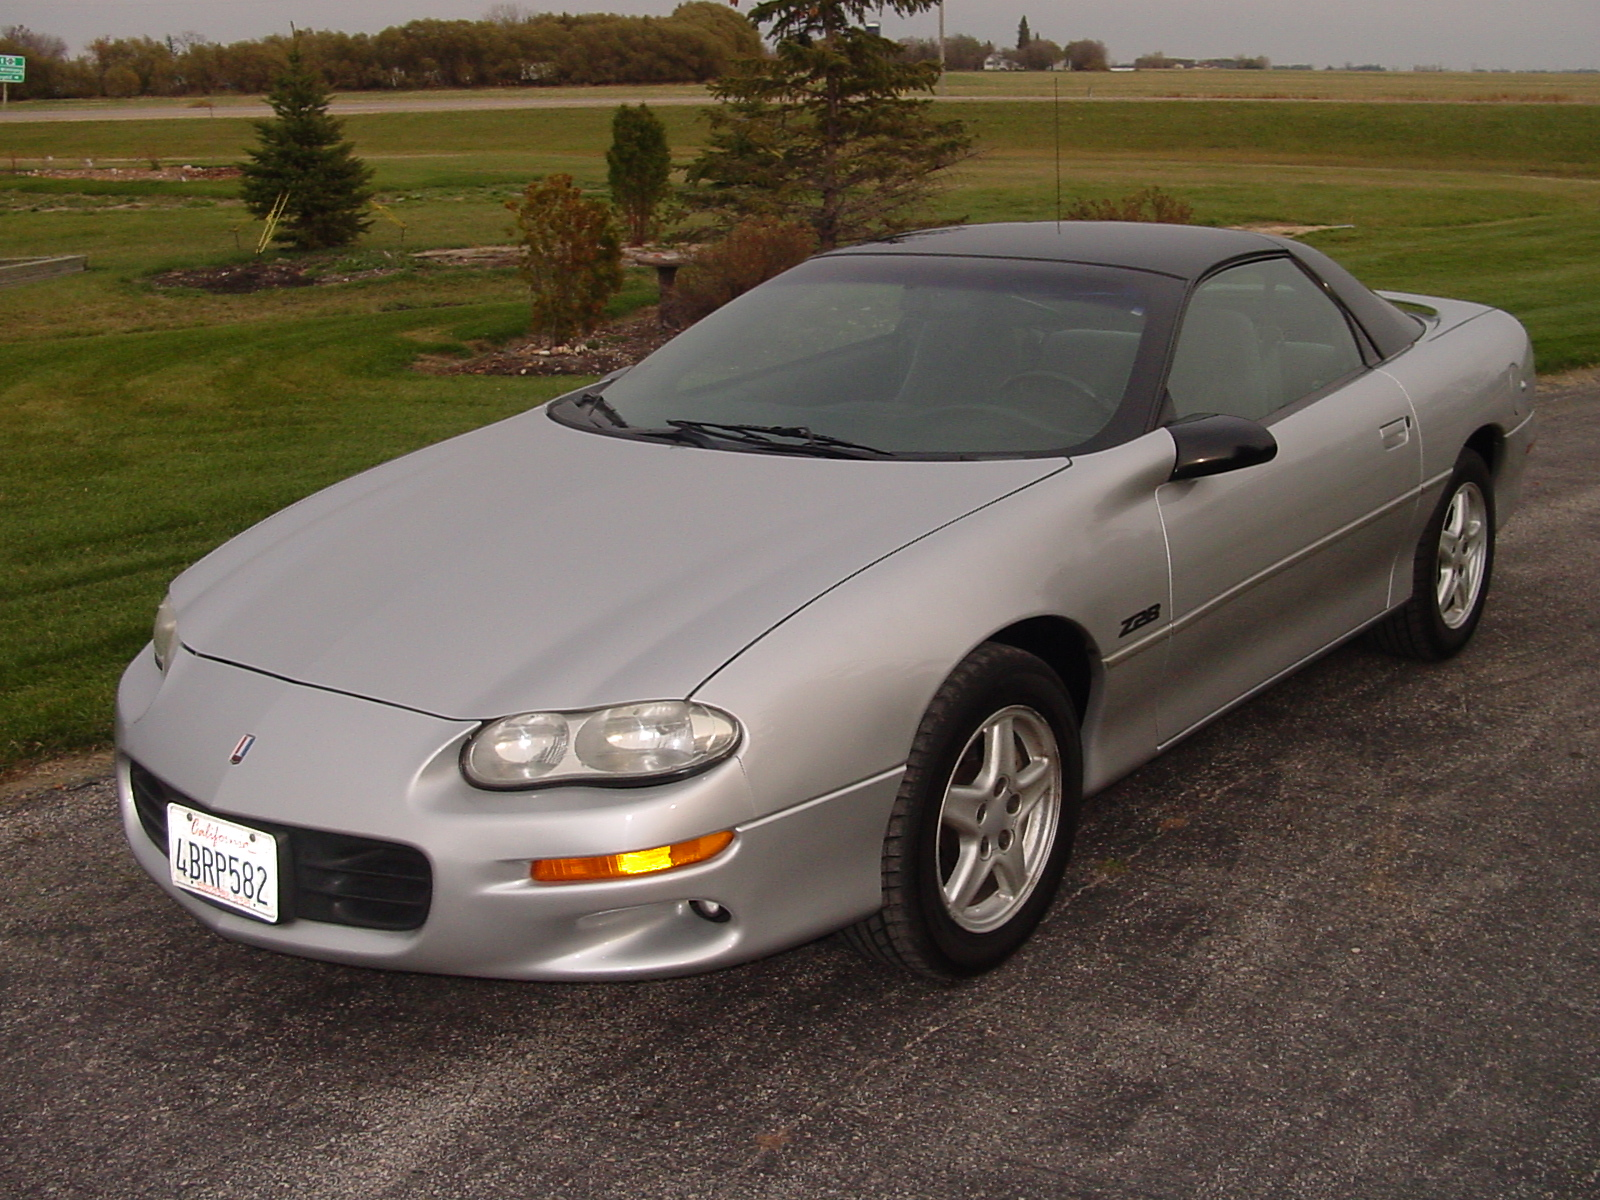 Picture of 2002 Chevrolet Camaro